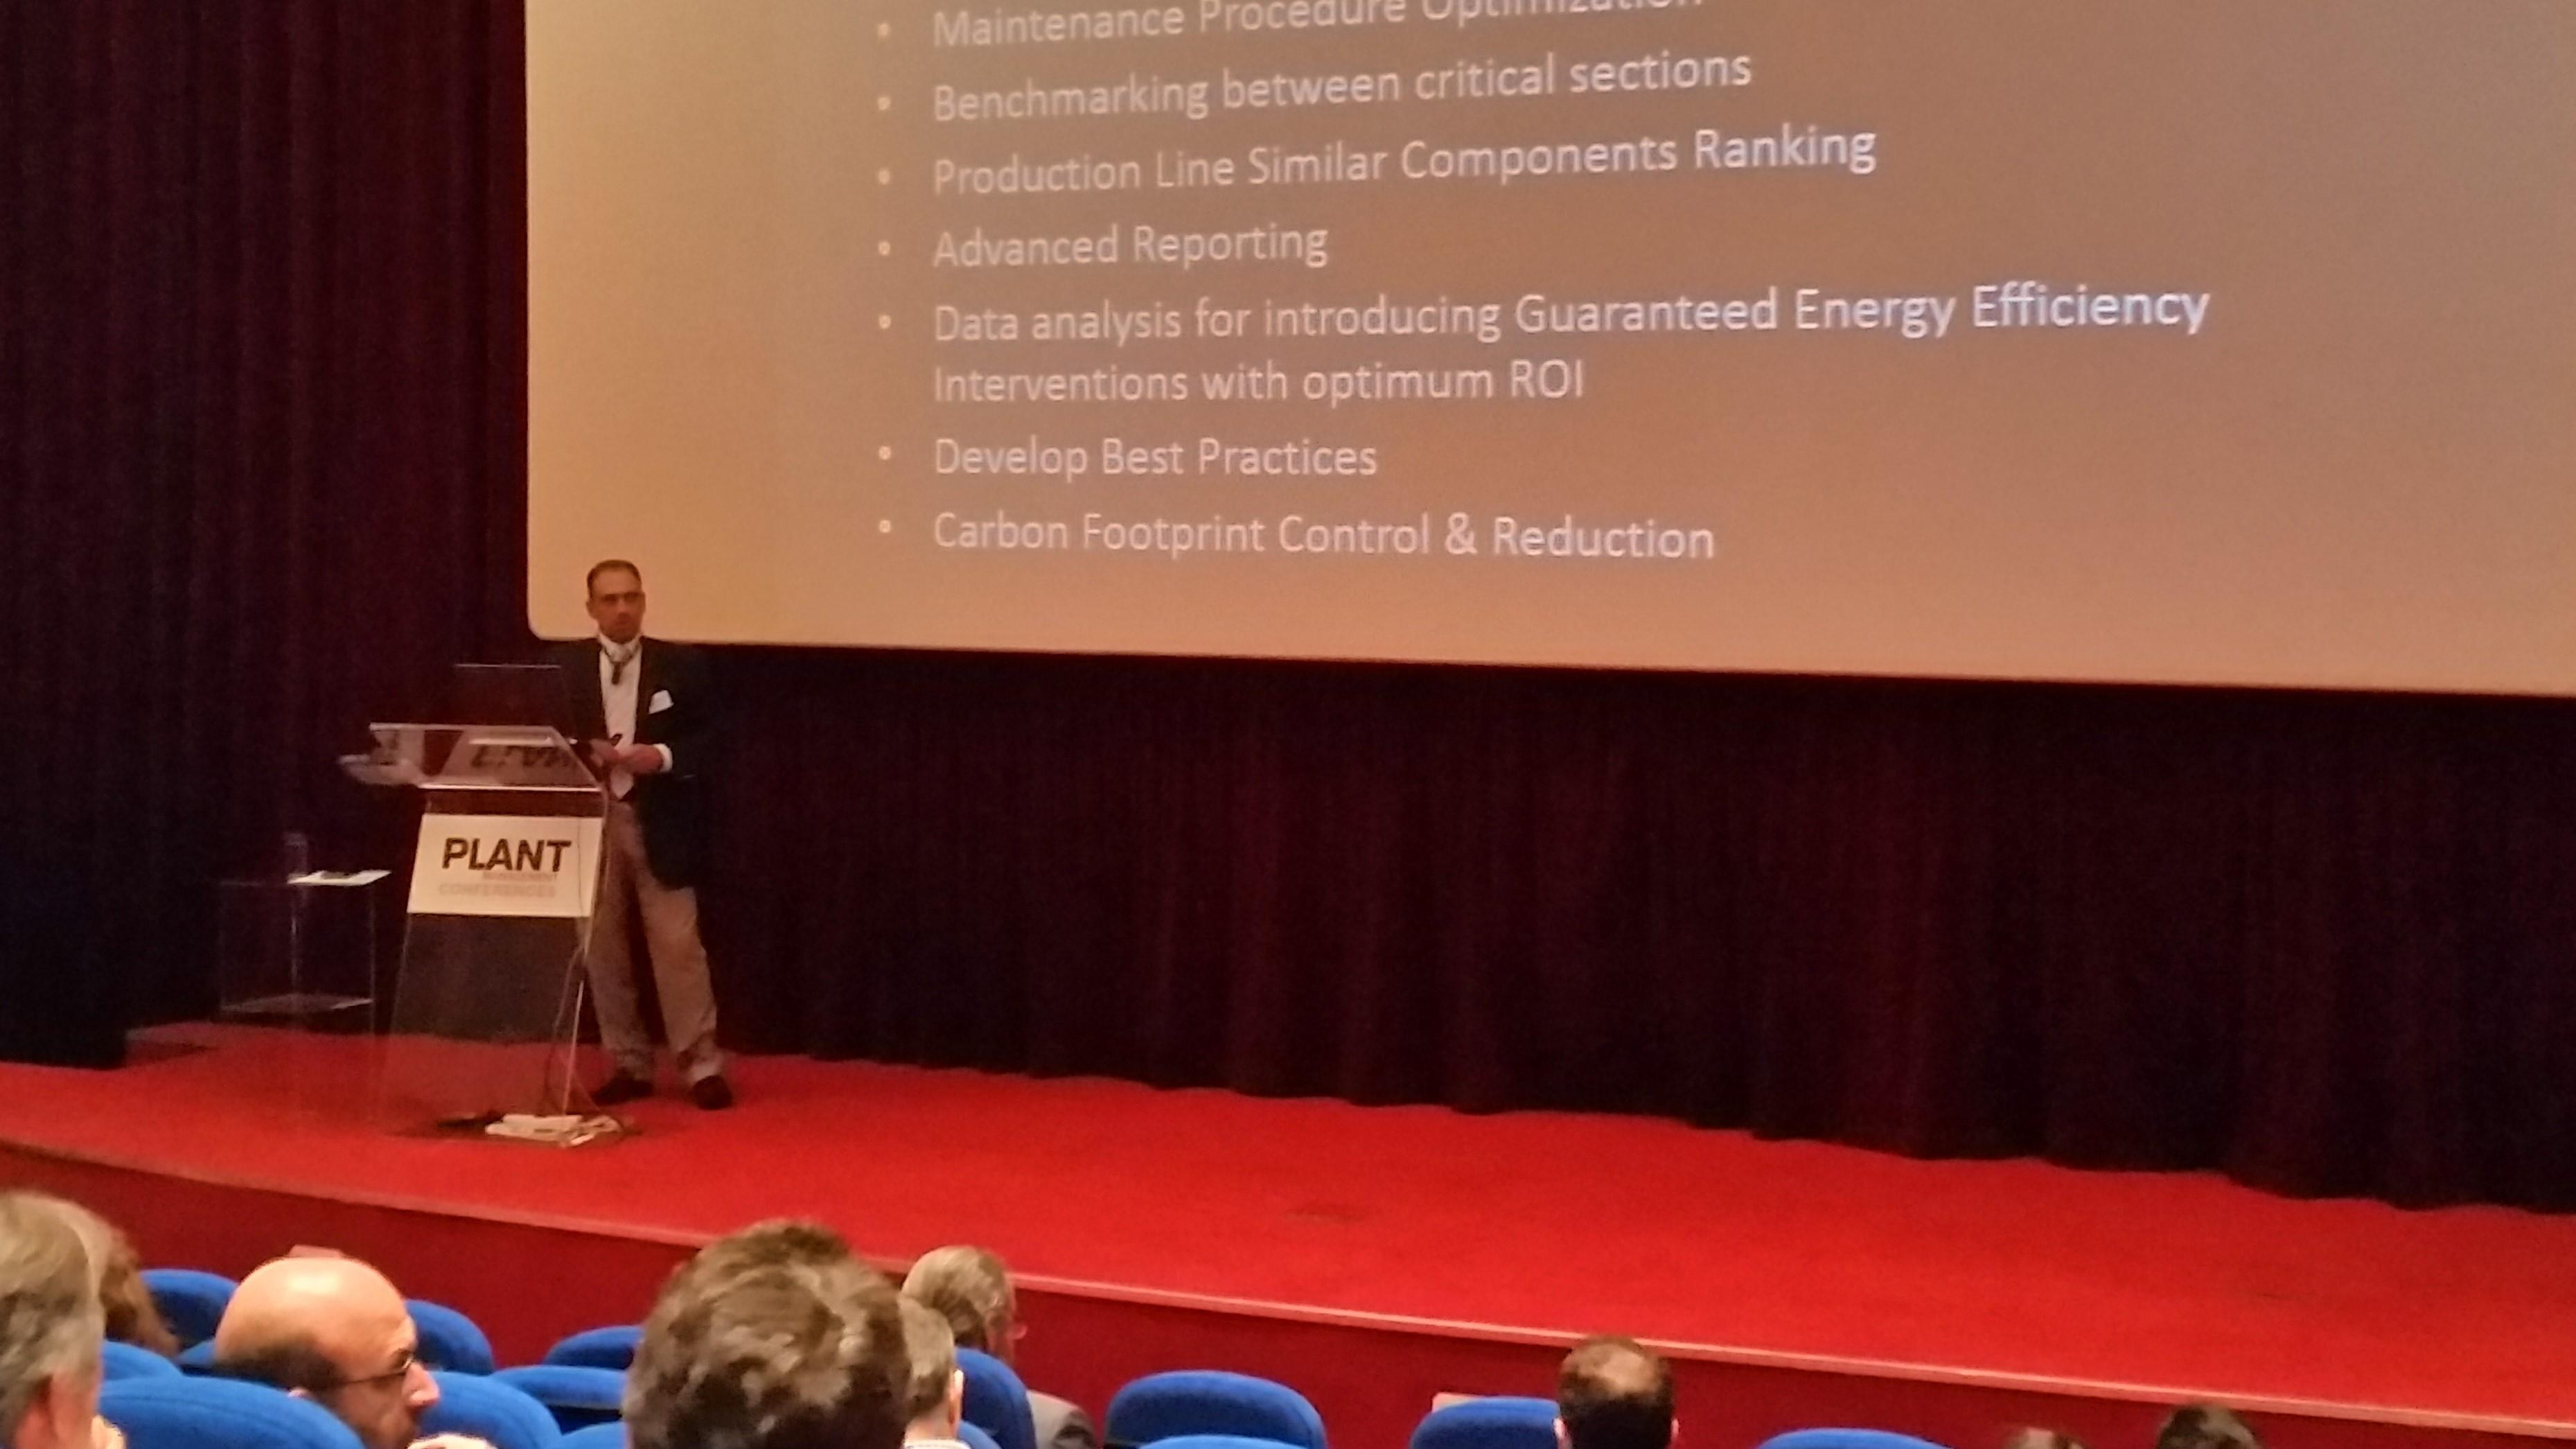 Athanassios Panagoulas Speaking at the Energy Efficiency Conference 2016